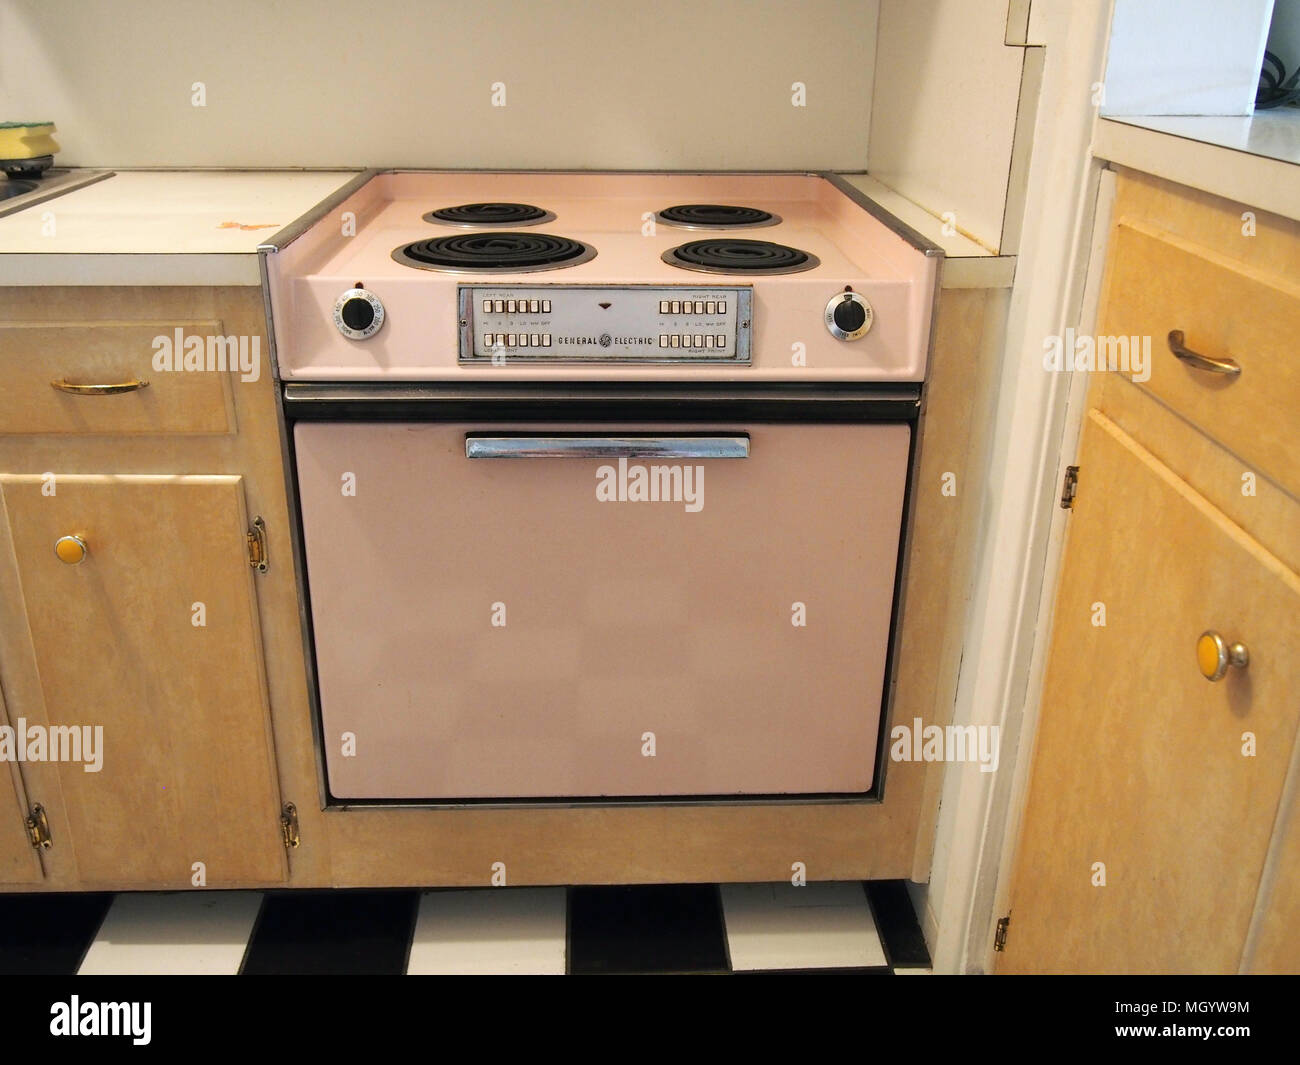 Old Electric Cooker Stock Photos & Old Electric Cooker Stock